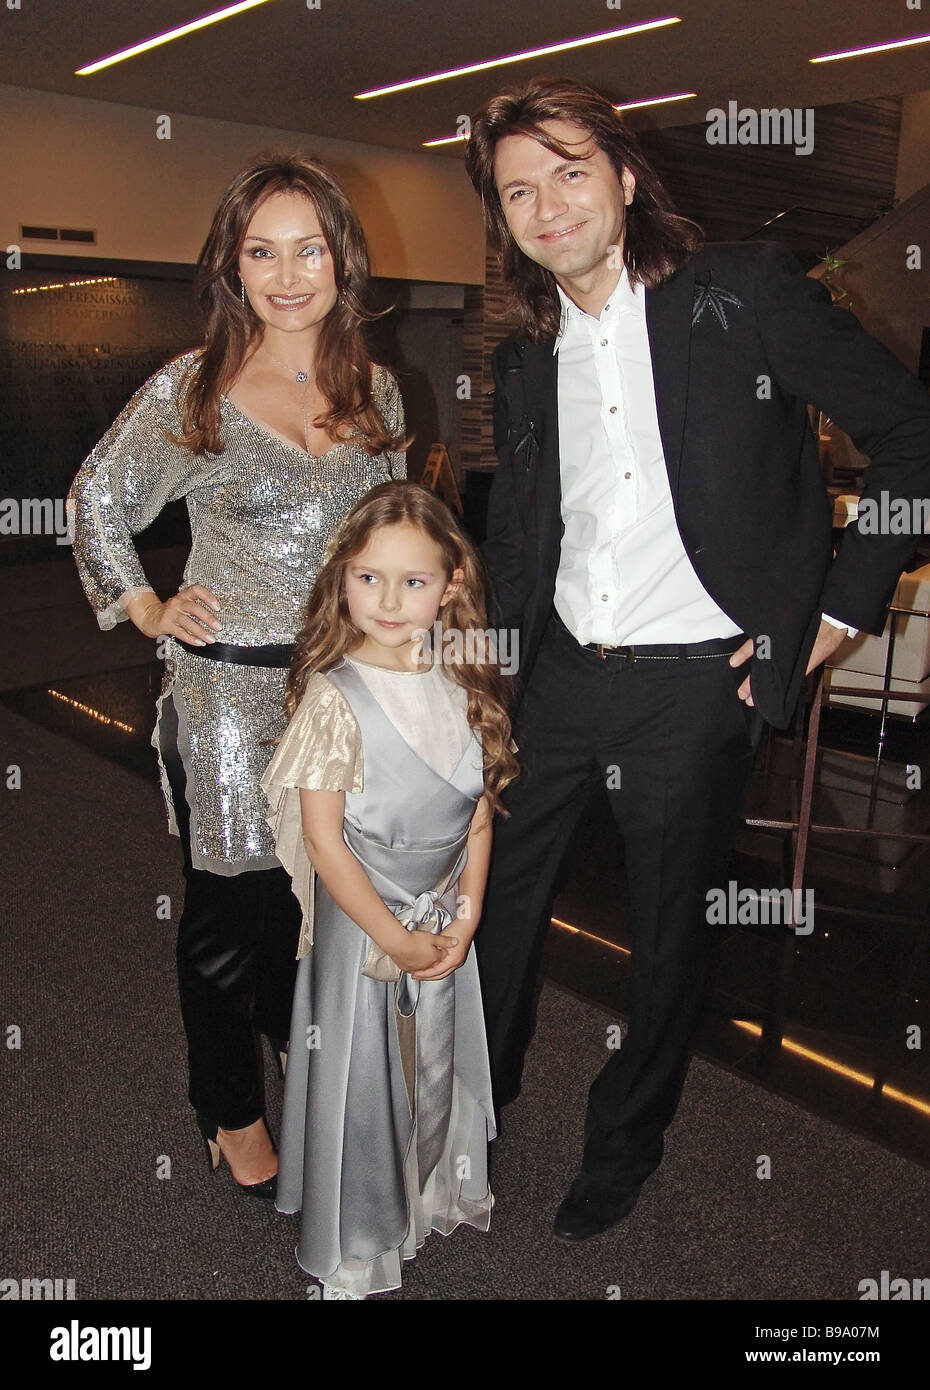 How are you all alike: Dmitry Malikov showed an unusual photo with his father and children